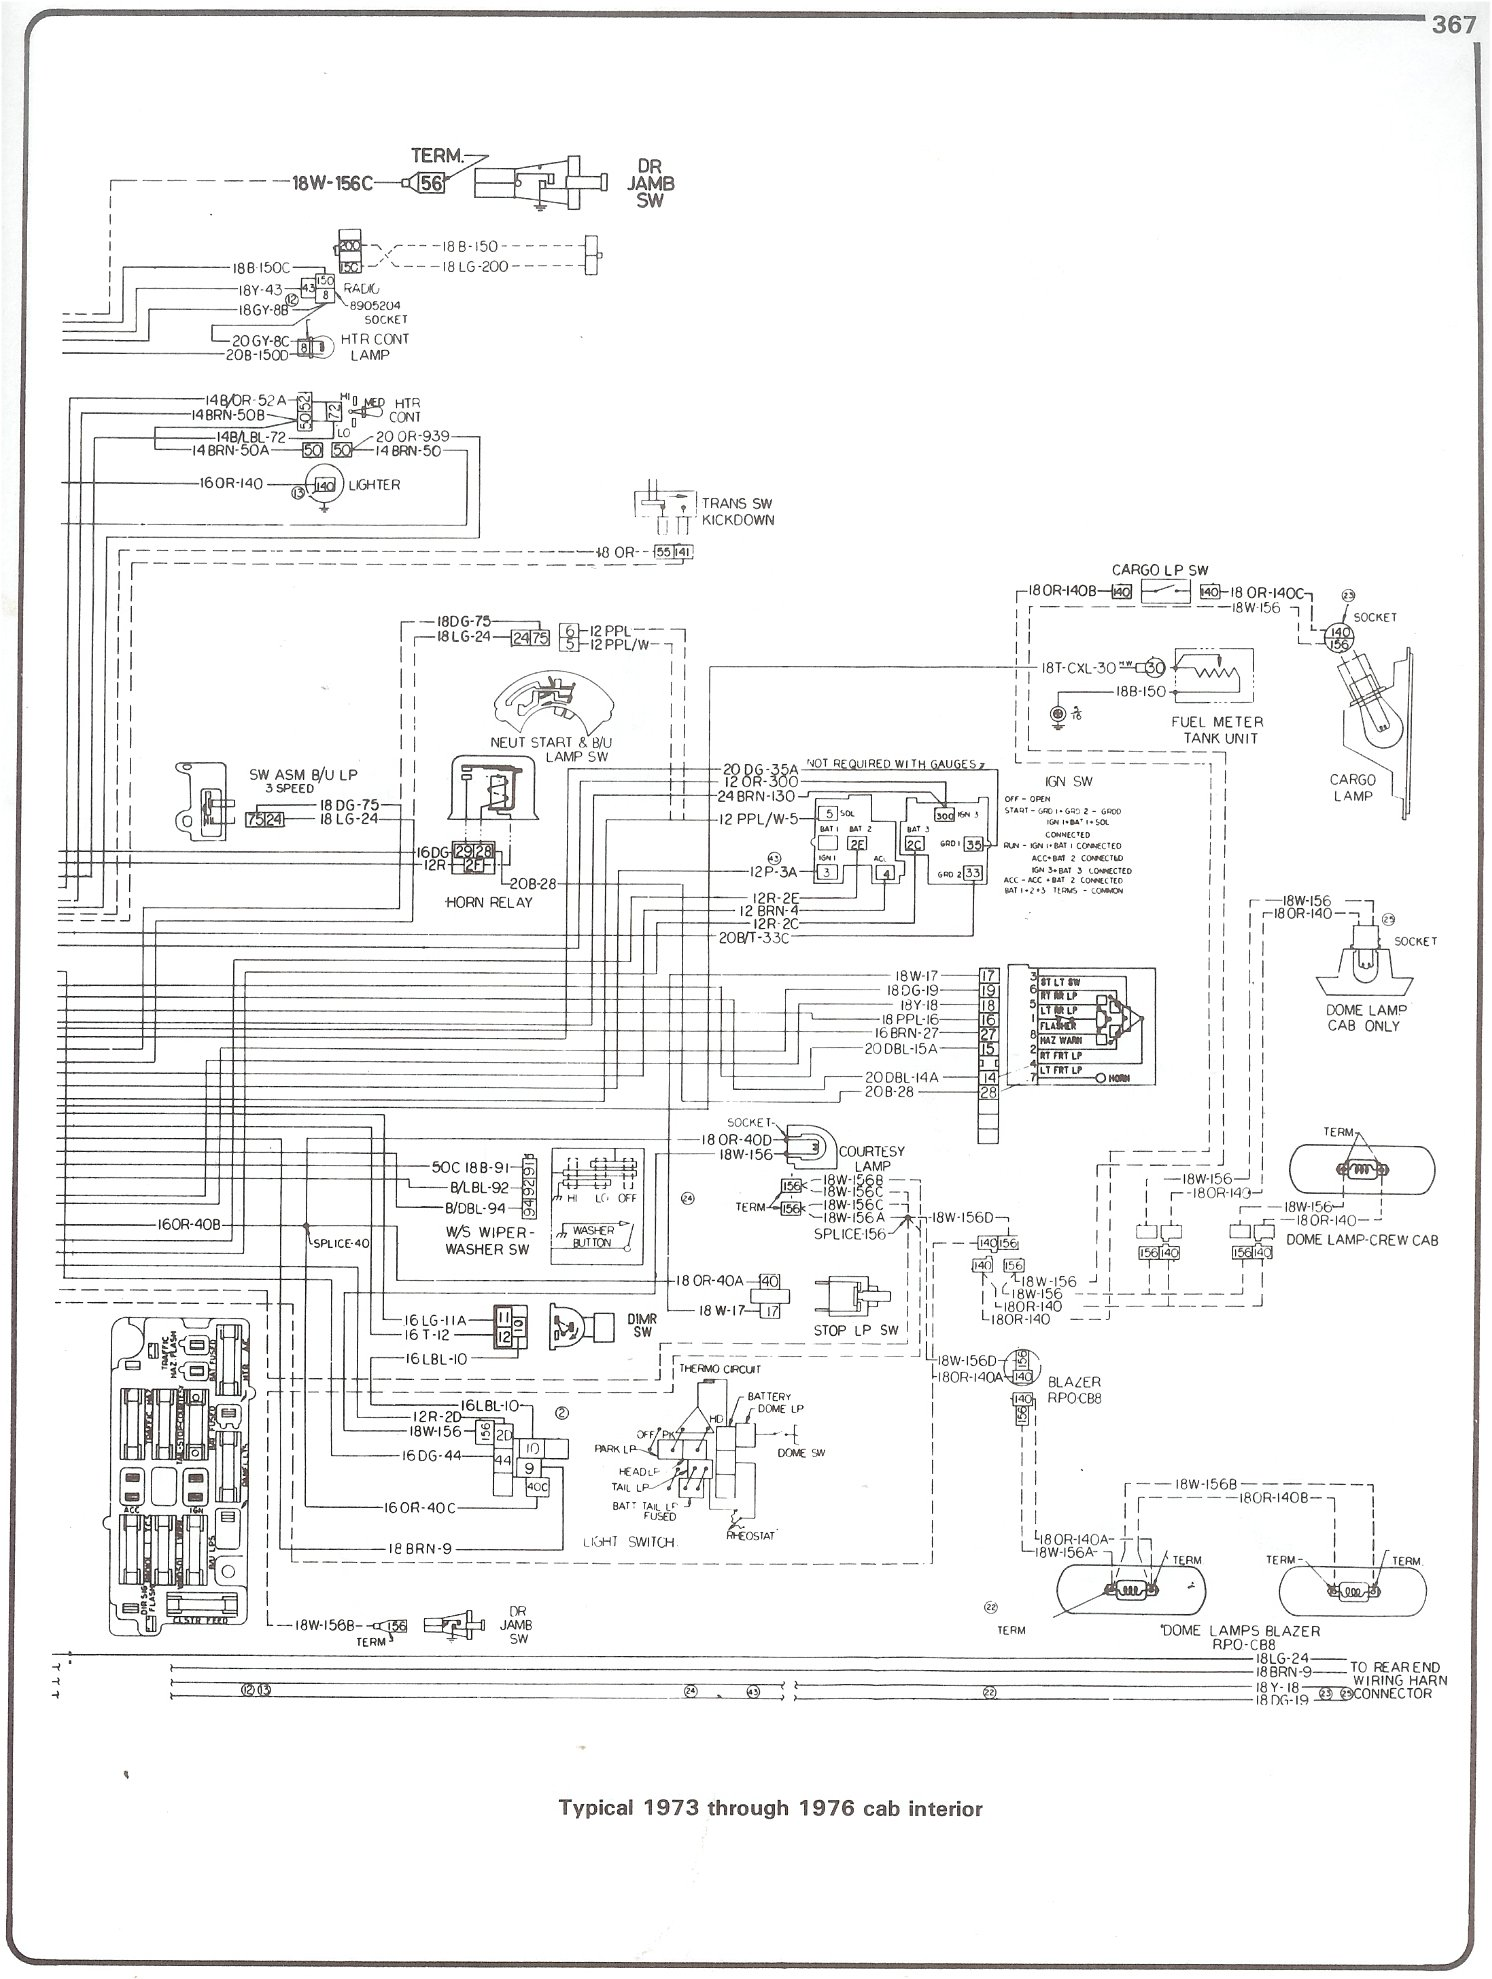 73 76_cab_inter complete 73 87 wiring diagrams